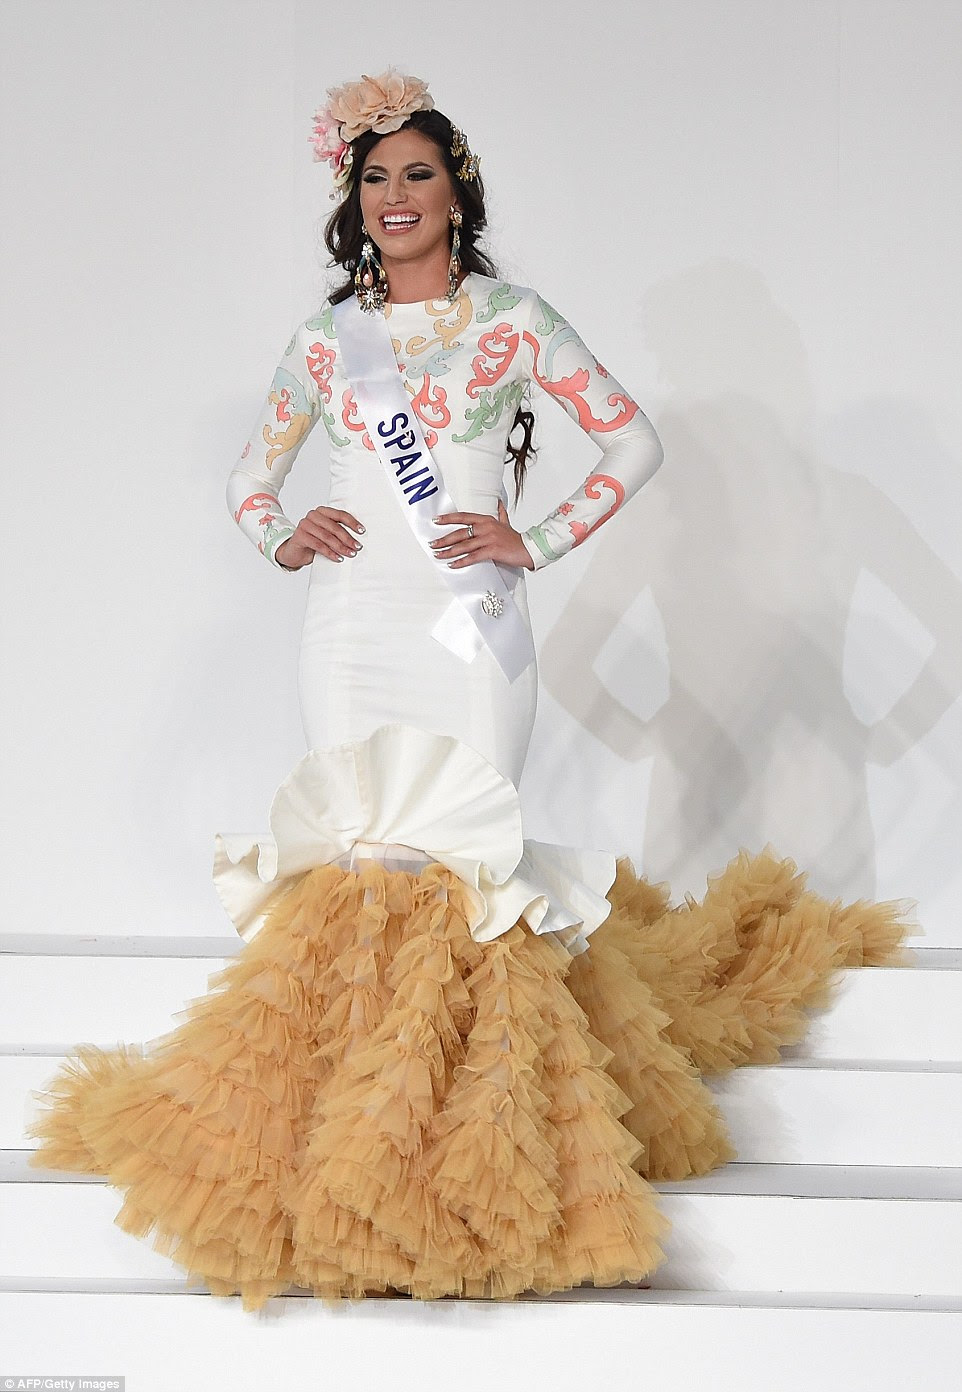 Of course Miss Spain had to have a flamenco-inspired skirt, with layers of tulle swinging as she walked. But Cristina Silva forewent the traditional red for a soft ivory with pastel swirls on the sleeves and top of her high-neck body-hugging dress